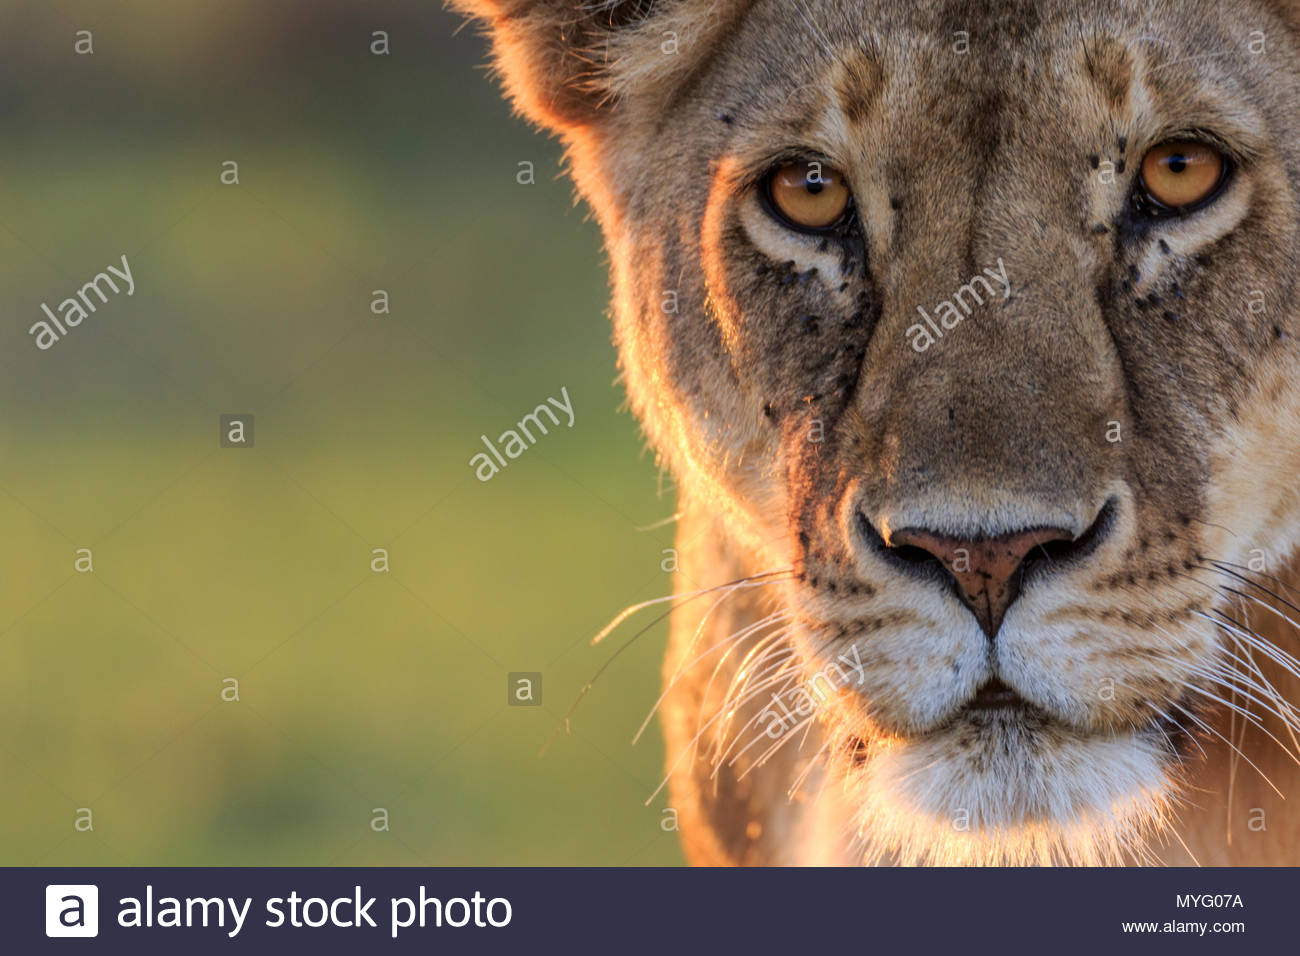 A female Lion, Panthera leo, looks at the camera. - Stock Image